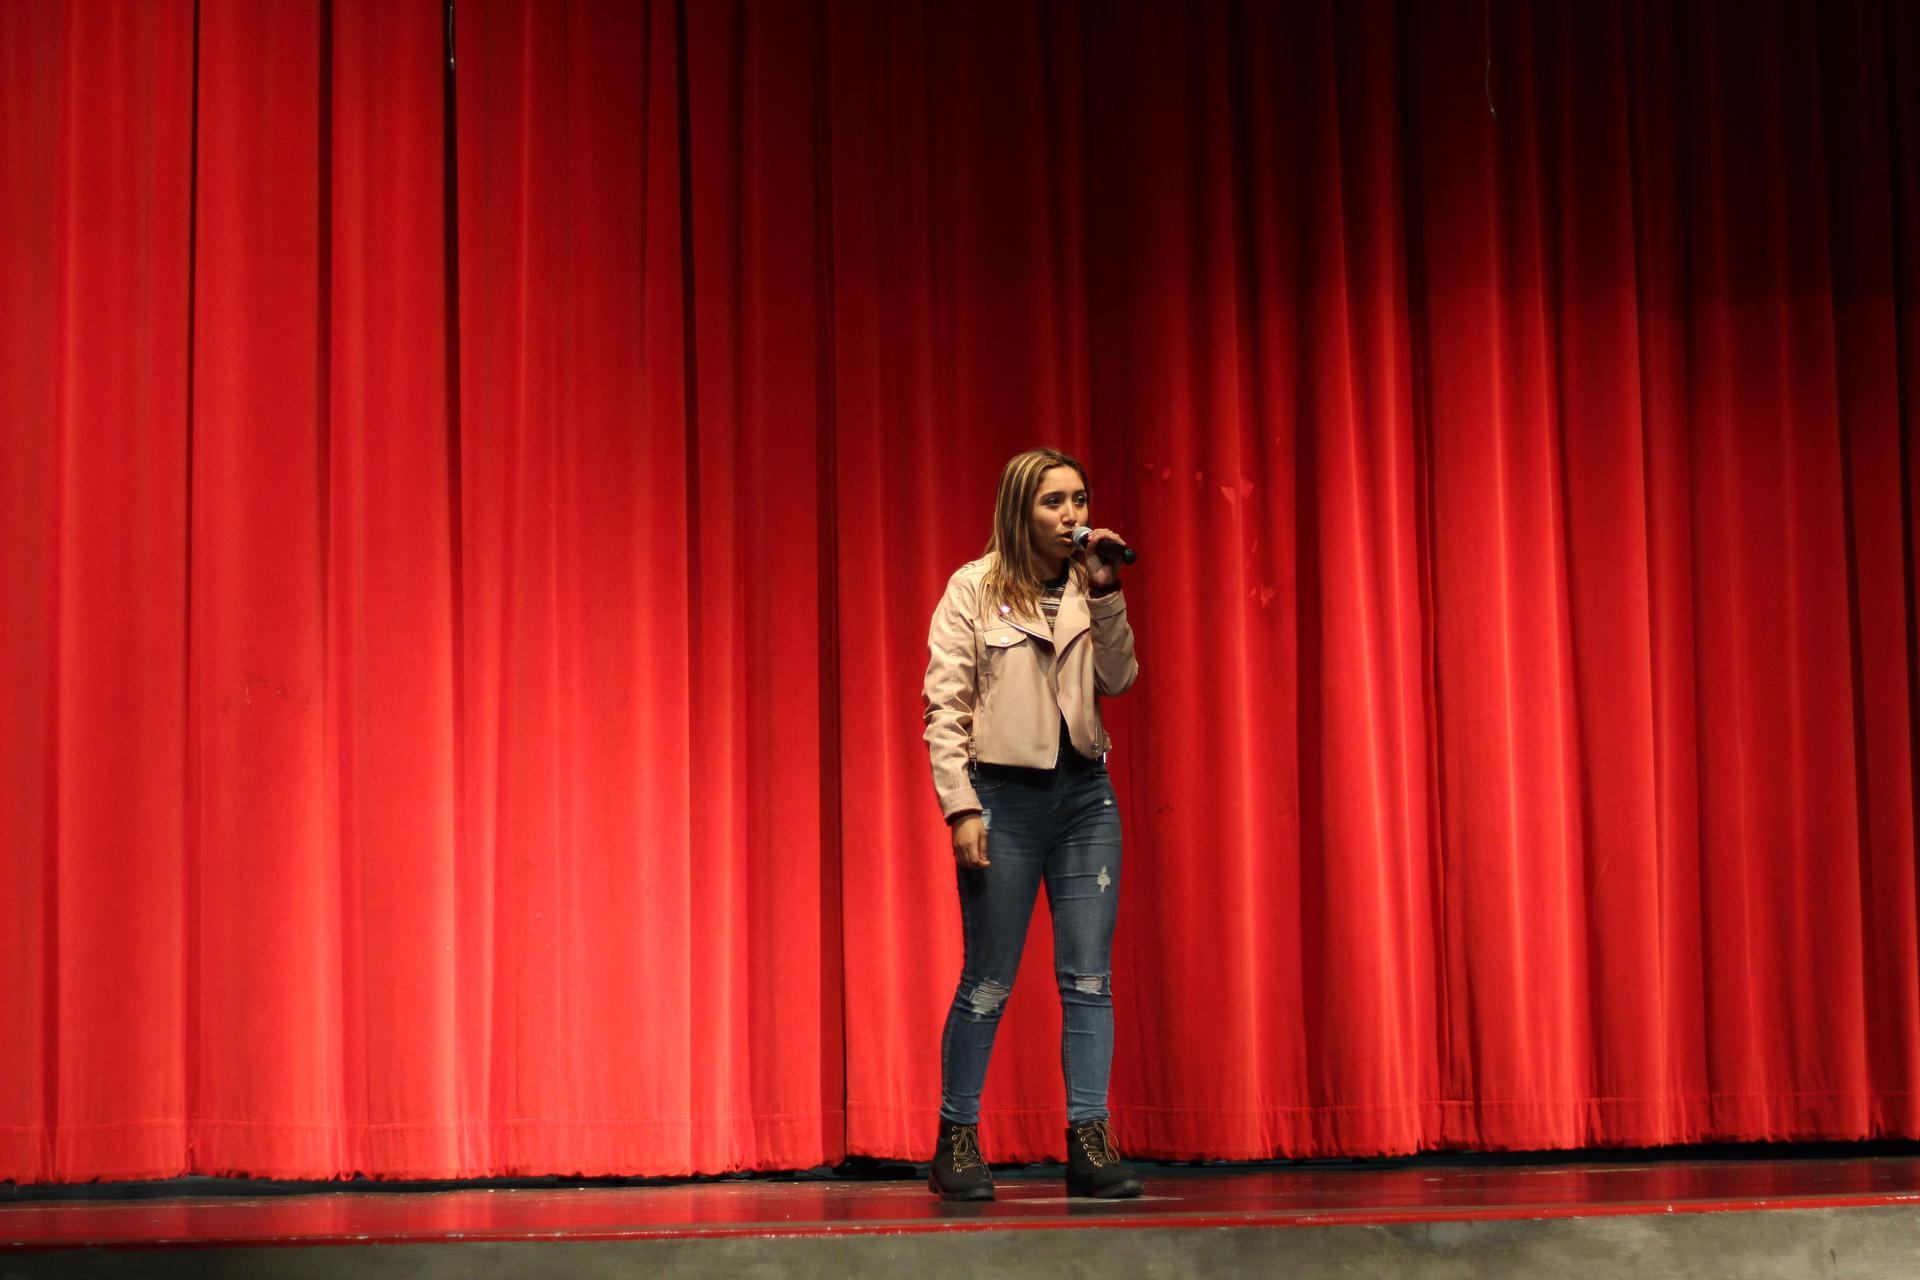 Sophia Atilano performs her part of a duet with Michael Eggert at the NSL Talent Show.